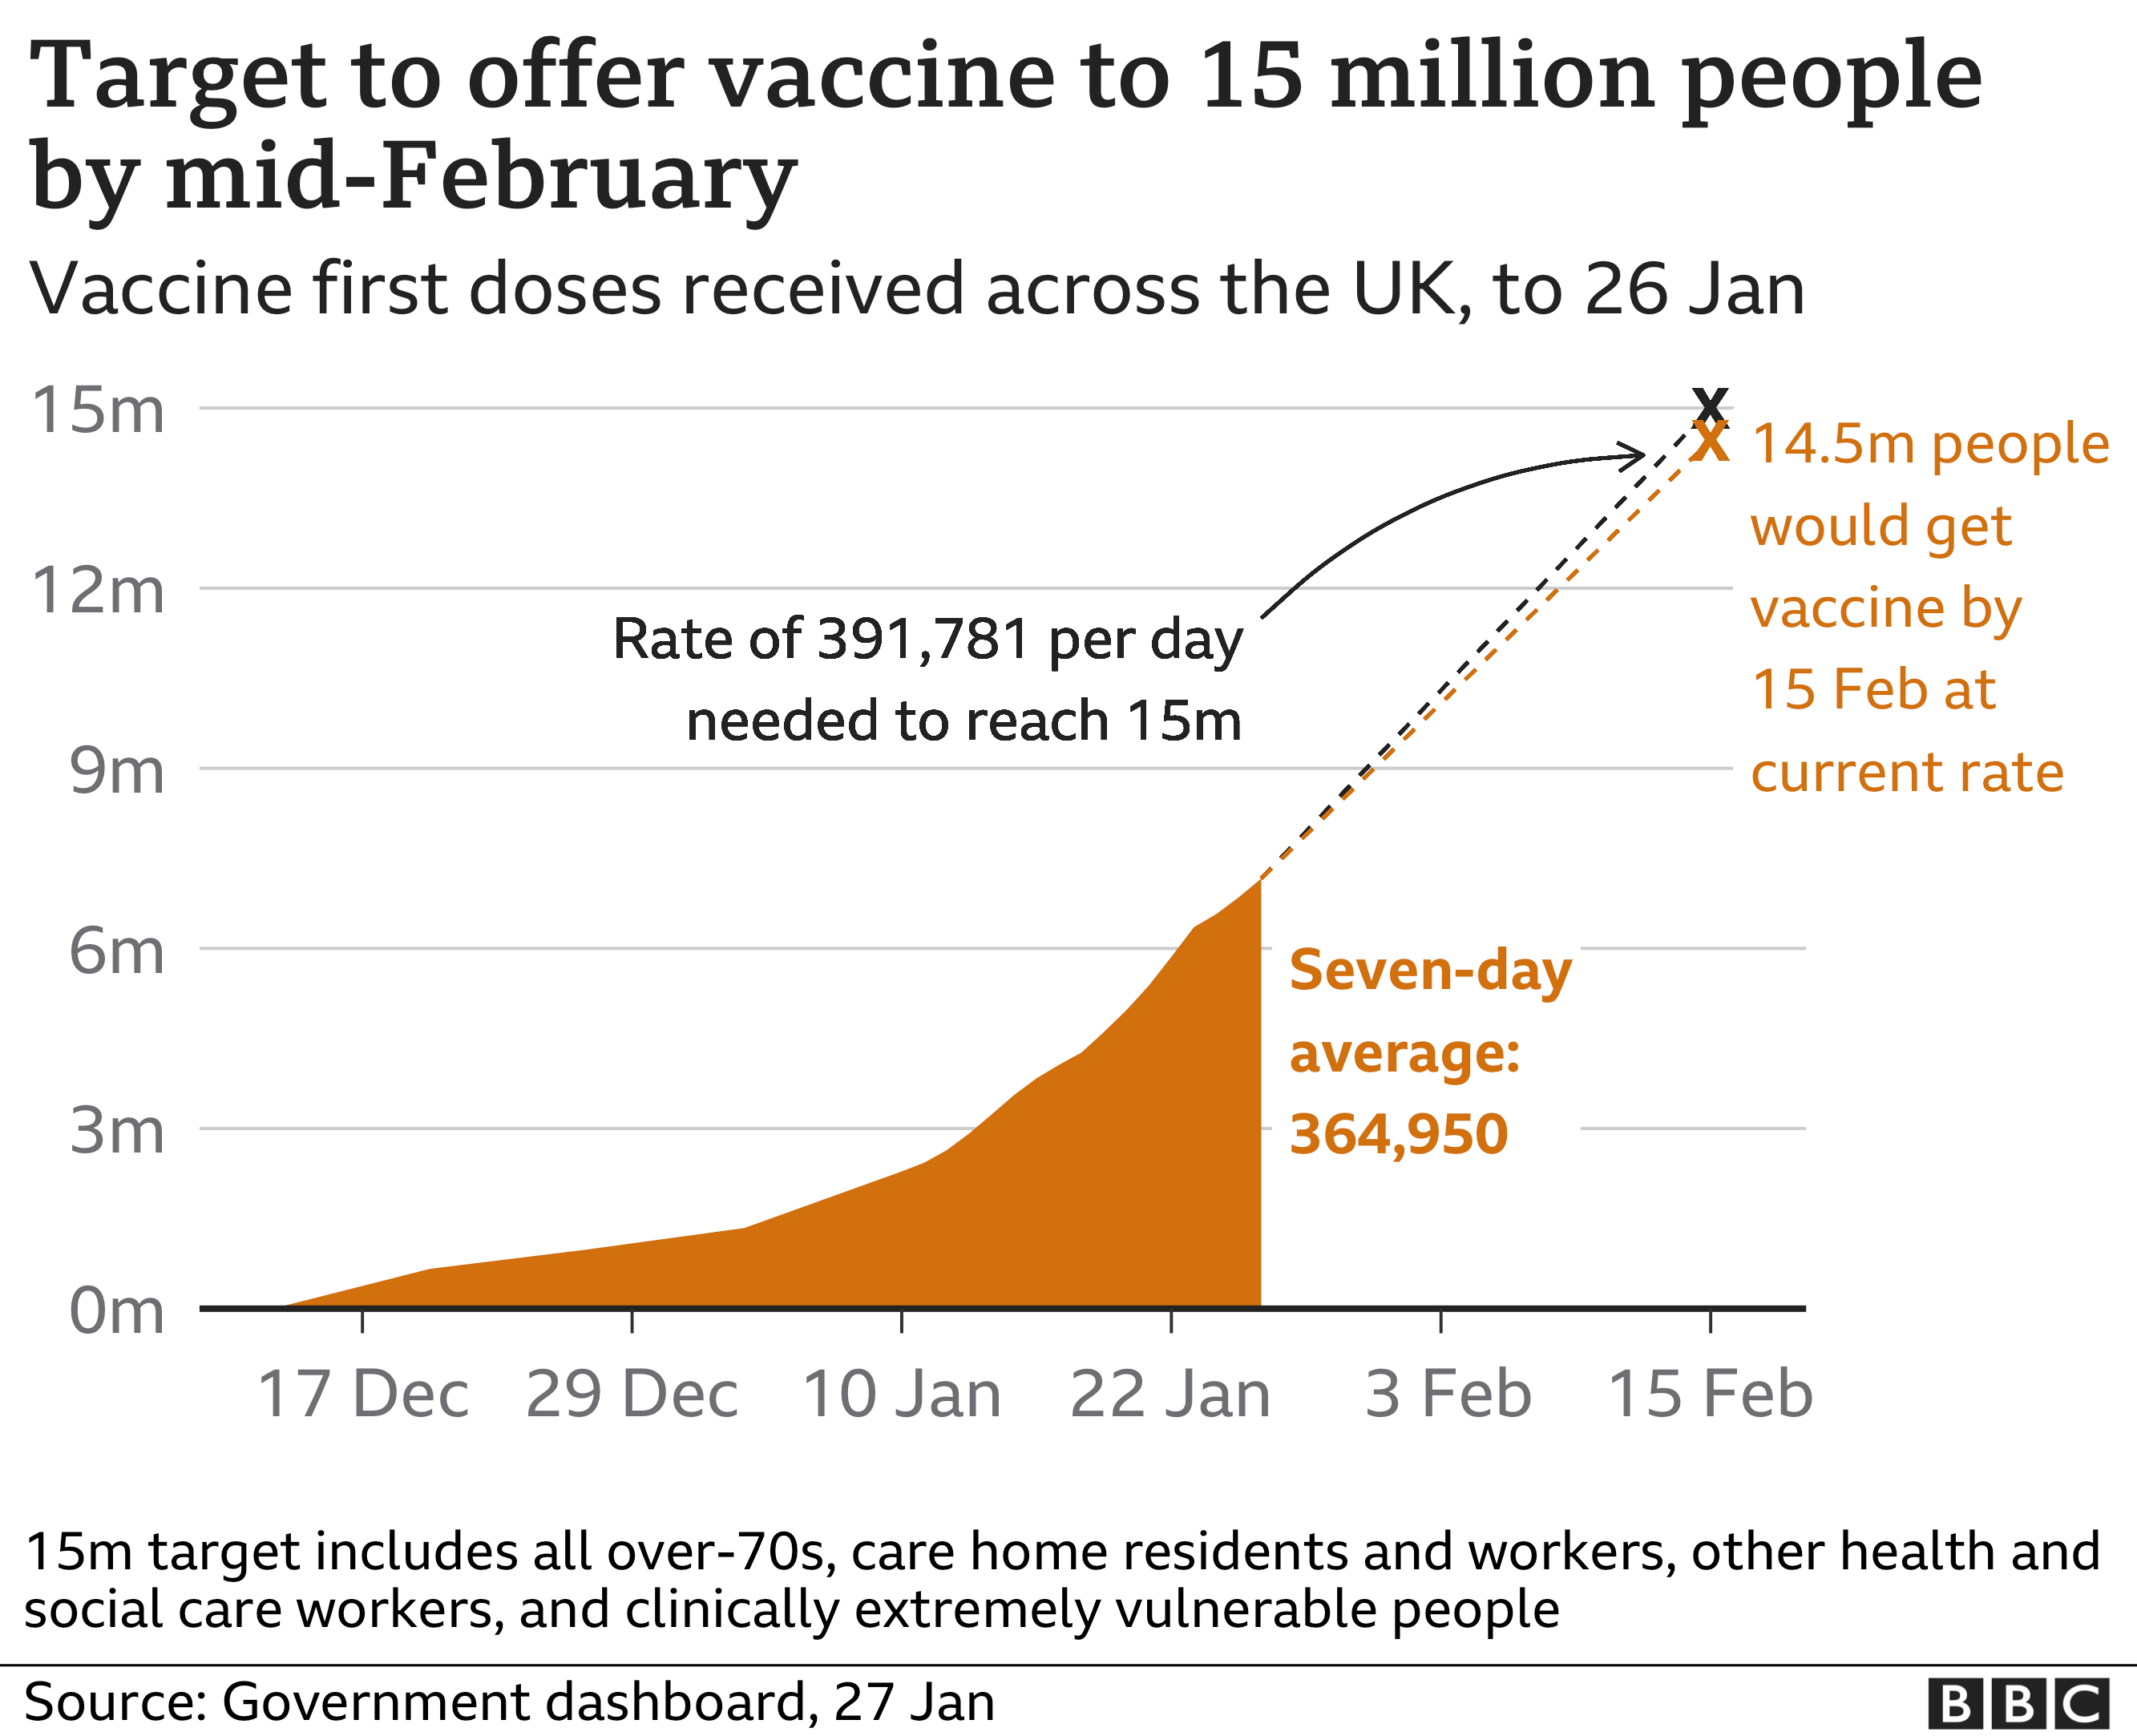 Chart showing progress towards vaccine target of 15m